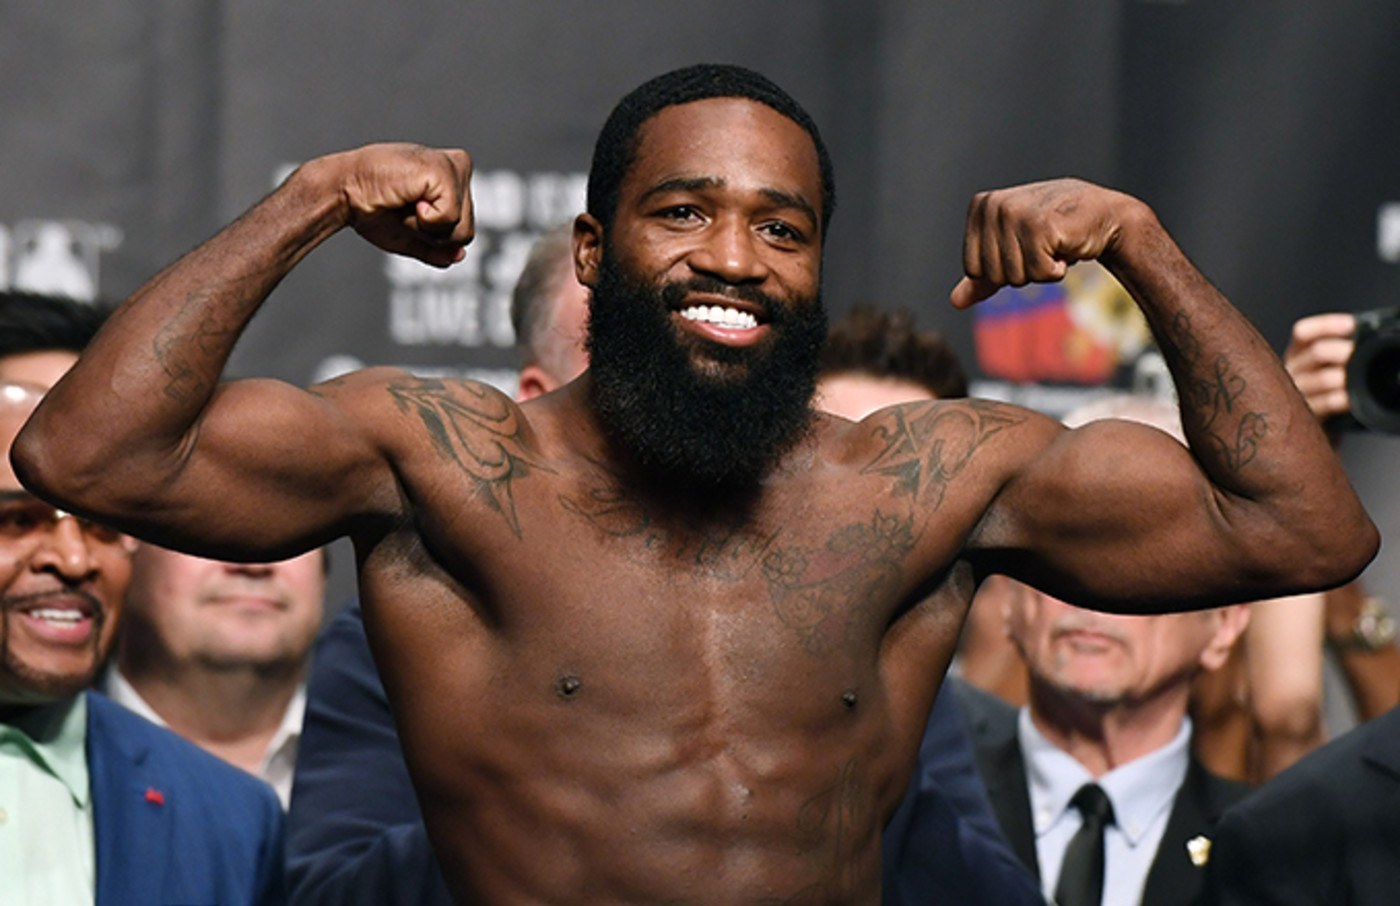 adrien-broner-was-reportedly-arrested-for-unpaid-800k-judgement-in-the-2018-assault-case